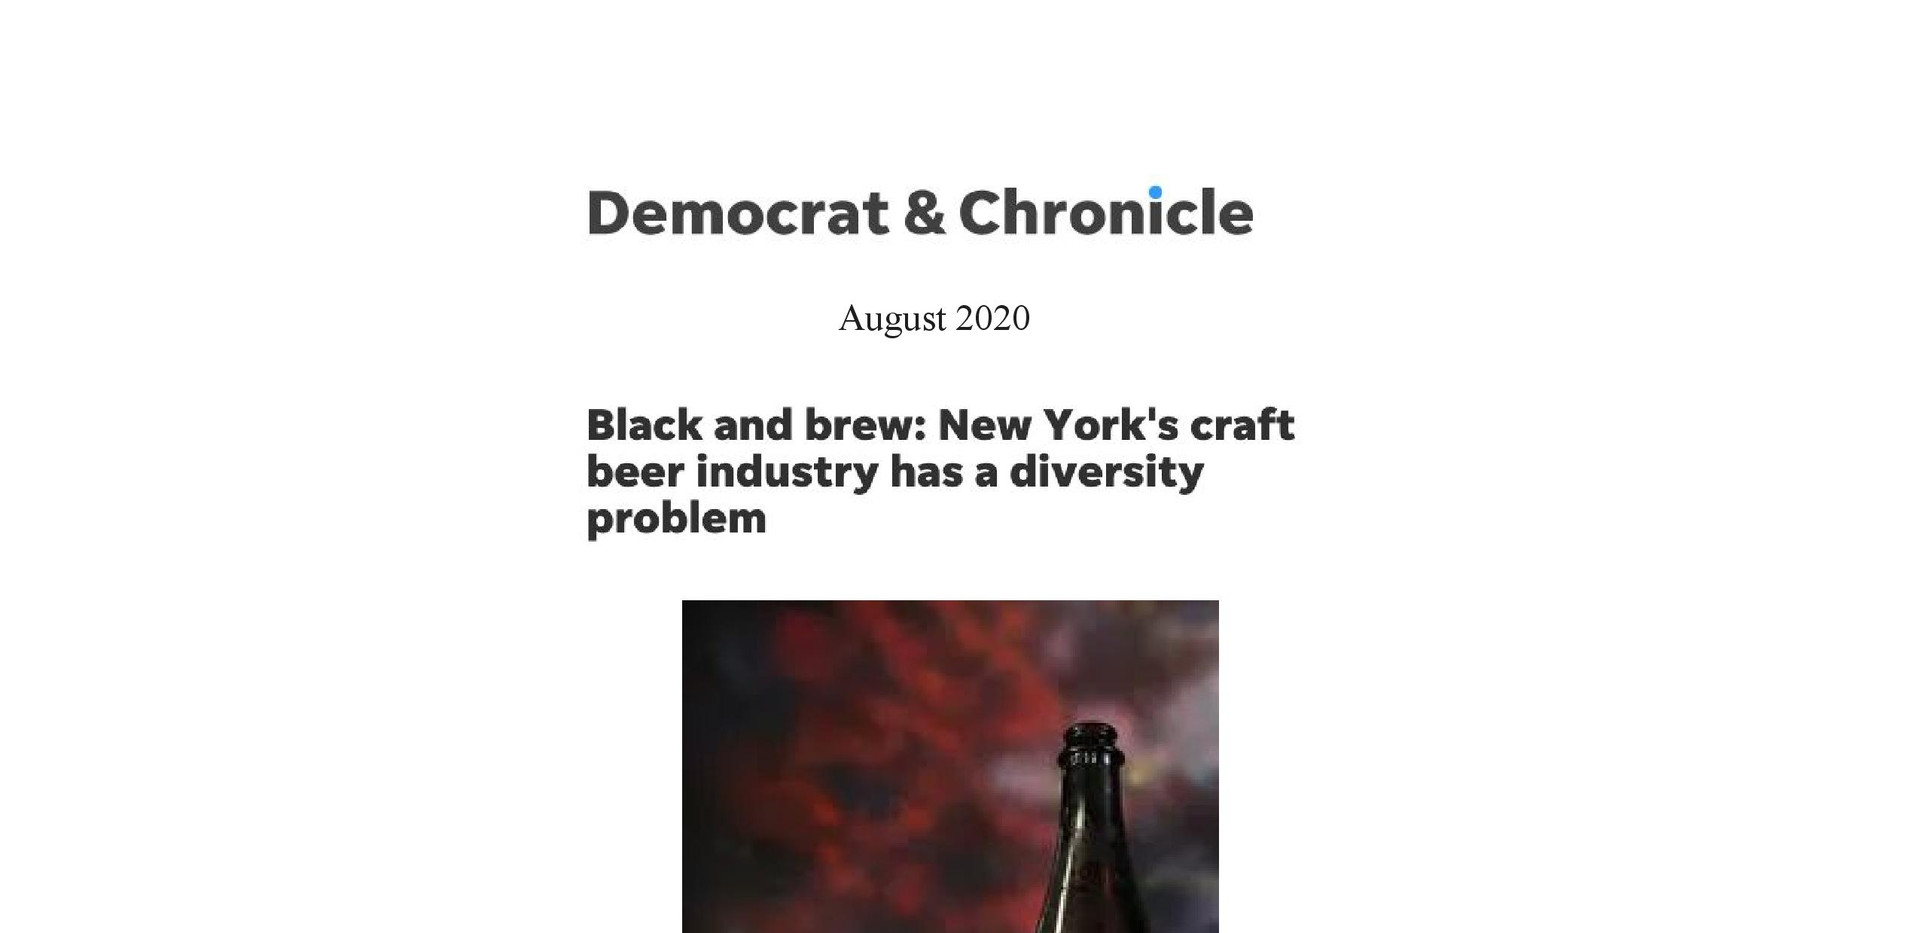 Democrat & Chronicle